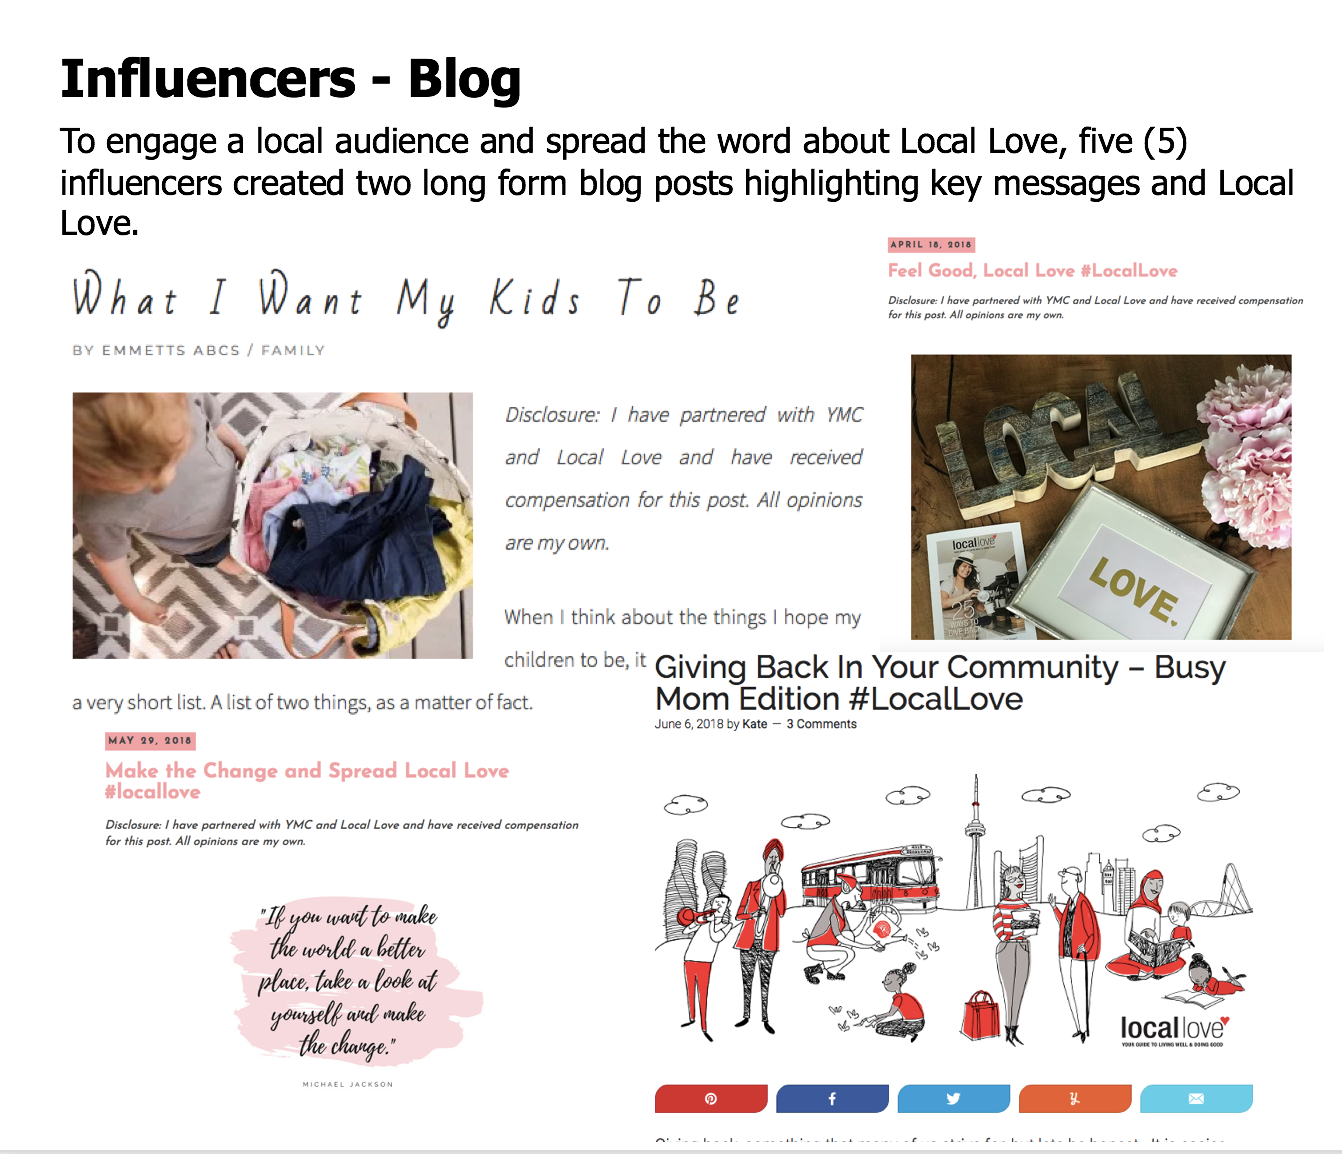 Influencers Blog